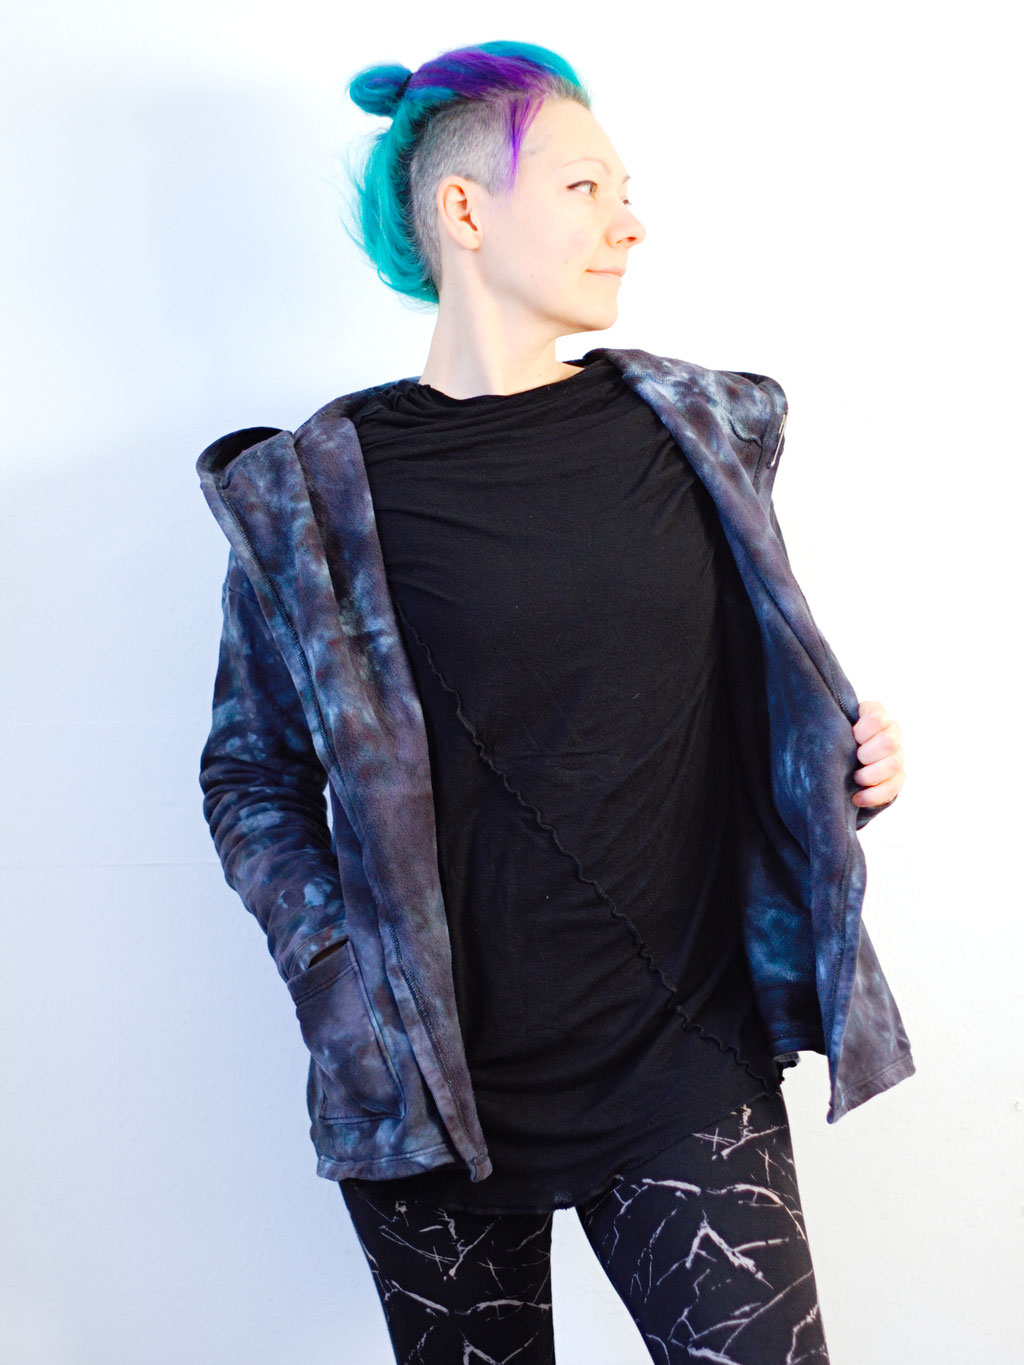 Re-dyed and repaired cardigan - adds pockets to my stay-home outfit - Zebraspider DIY Anti-Fashion Blog